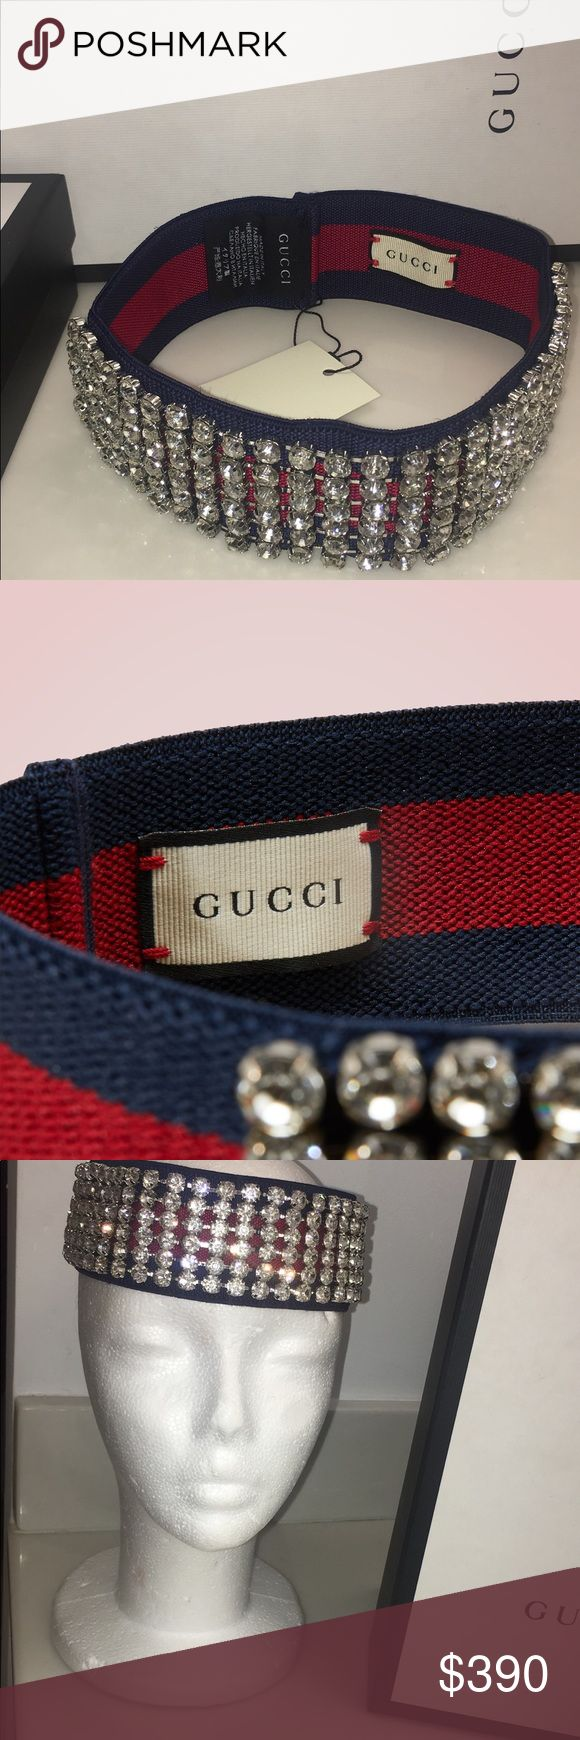 Gucci crystal web headband WHY WE LOVE IT At the heart of the Gucci collection is the red and blue web band displayed here on the Web headband with crystals. This stretchy piece is the ultimate preppy accessory and the hallmark of the luxury Italian fashion house's chic, classic style. The sparkling crystals sewn onto its front evoke the outfits of 1990s pop stars. Wear this piece to add a feminine touch to a short boyish haircut or to free your neck from long, sleek hair.  Comes new with…